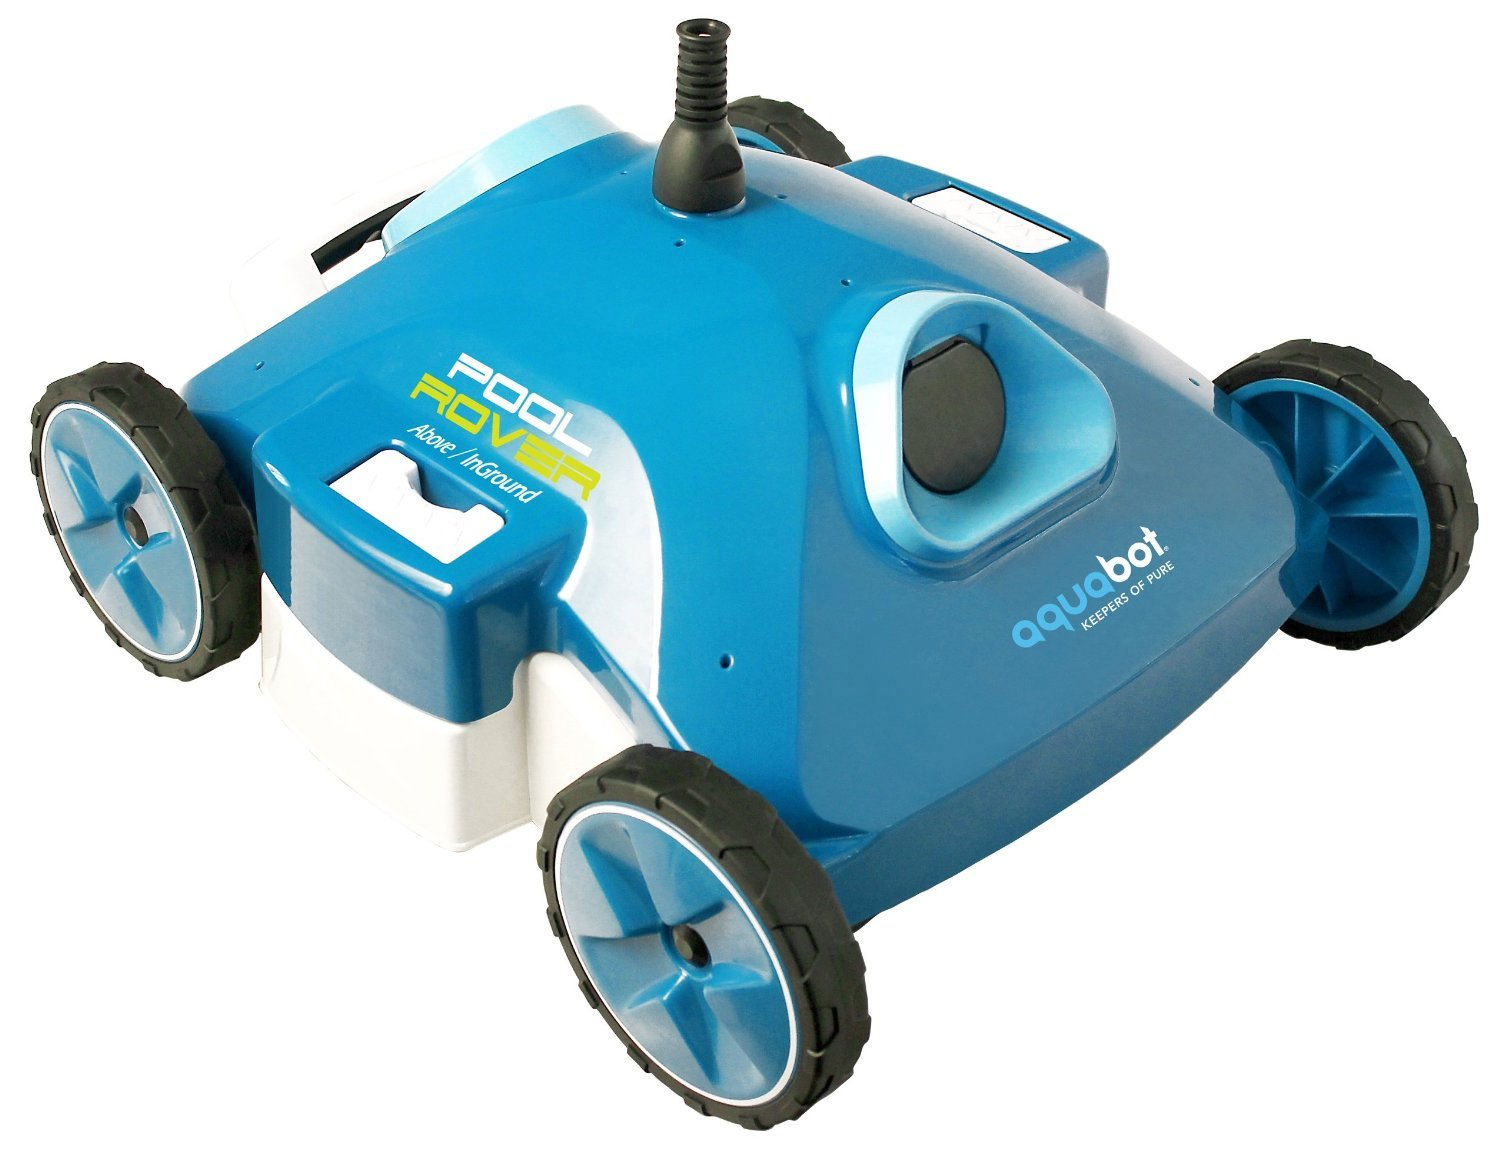 Aquabot POOL ROVER S2 40, US, JET, 115VAC/48VDC, BLUE Pool Cleaner Under $300